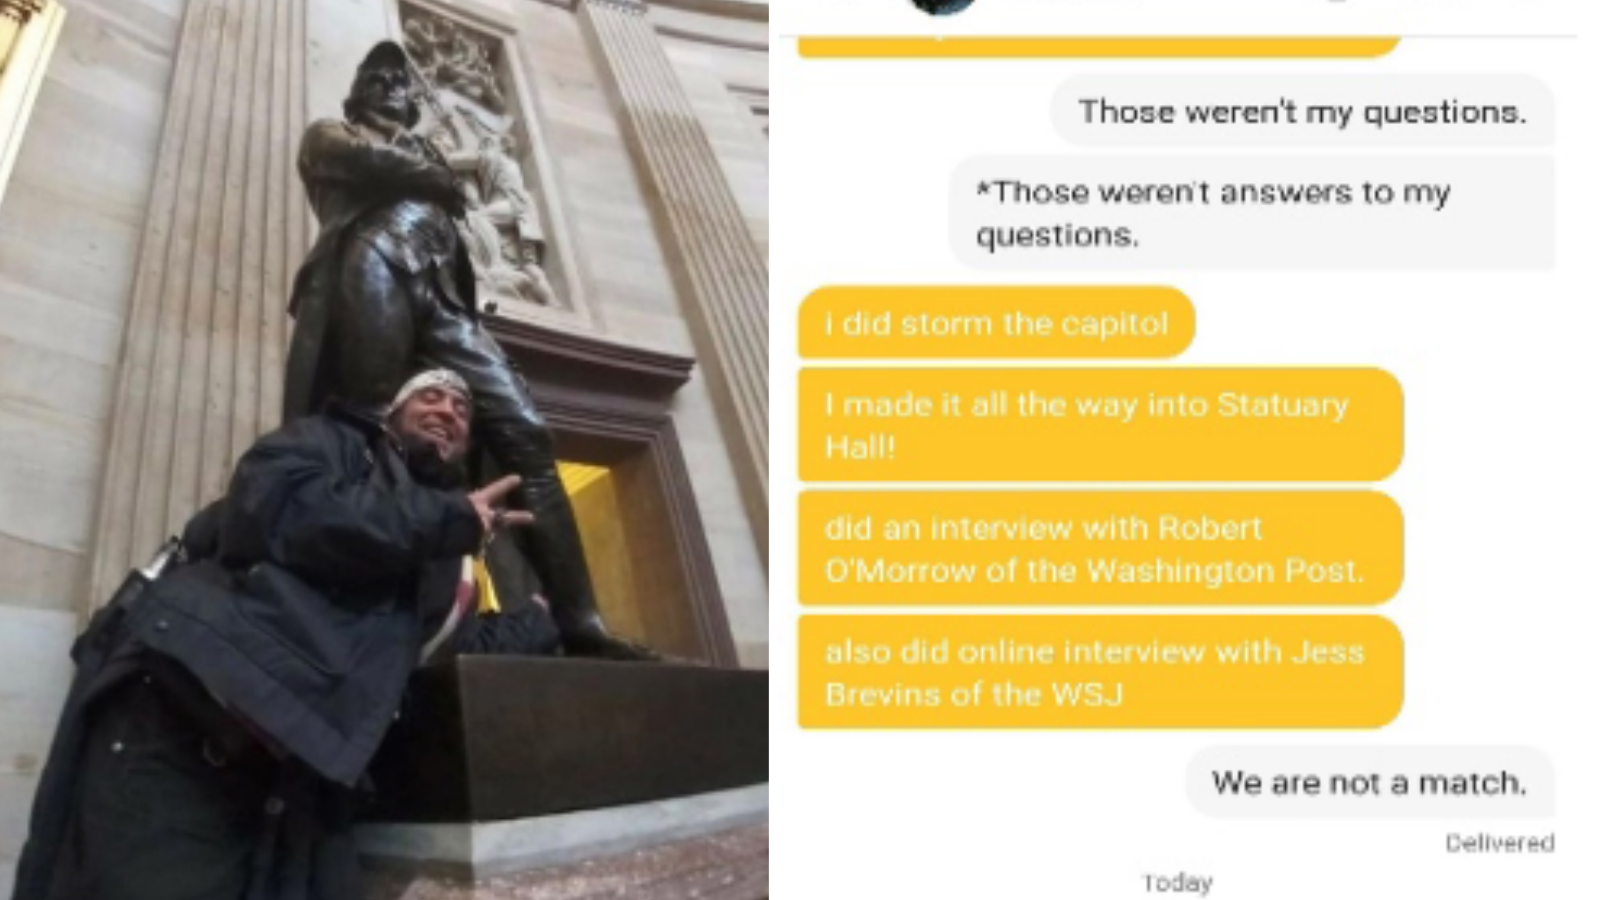 'We Are Not a Match': Bumble Date Turns Capitol Rioter In to the FBI